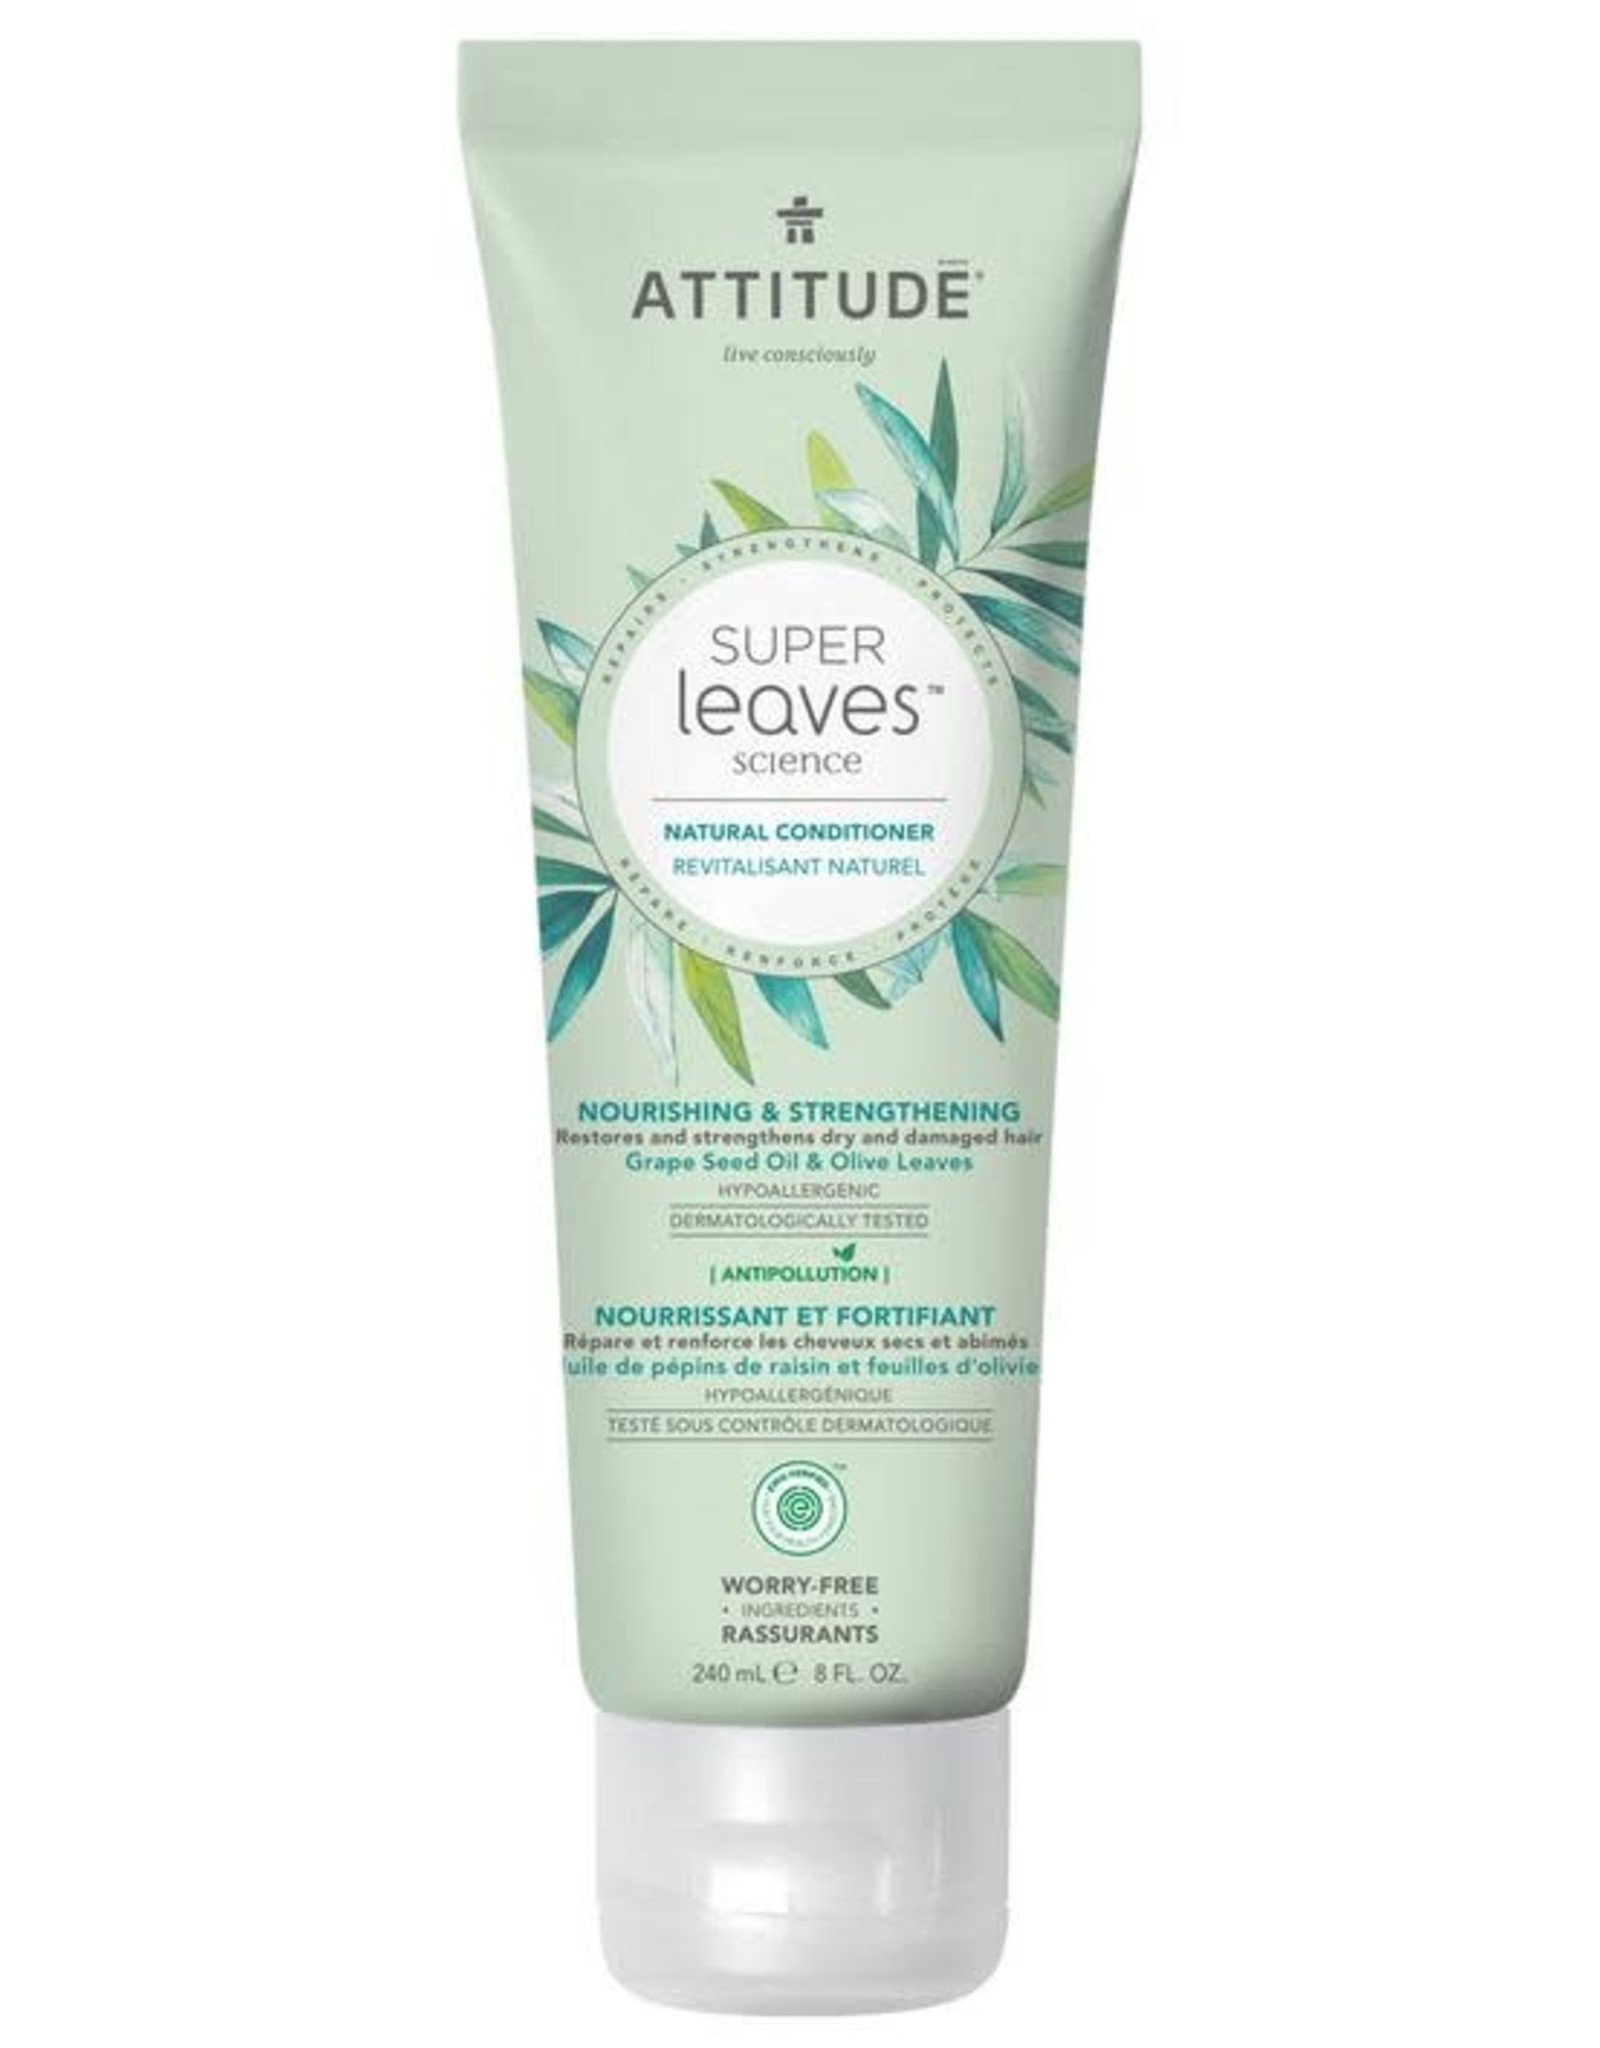 Attitude Super Leaves Natural Conditioner Nourishing & Strengthening Grape Seed Oil & Olive Leaves 240ml